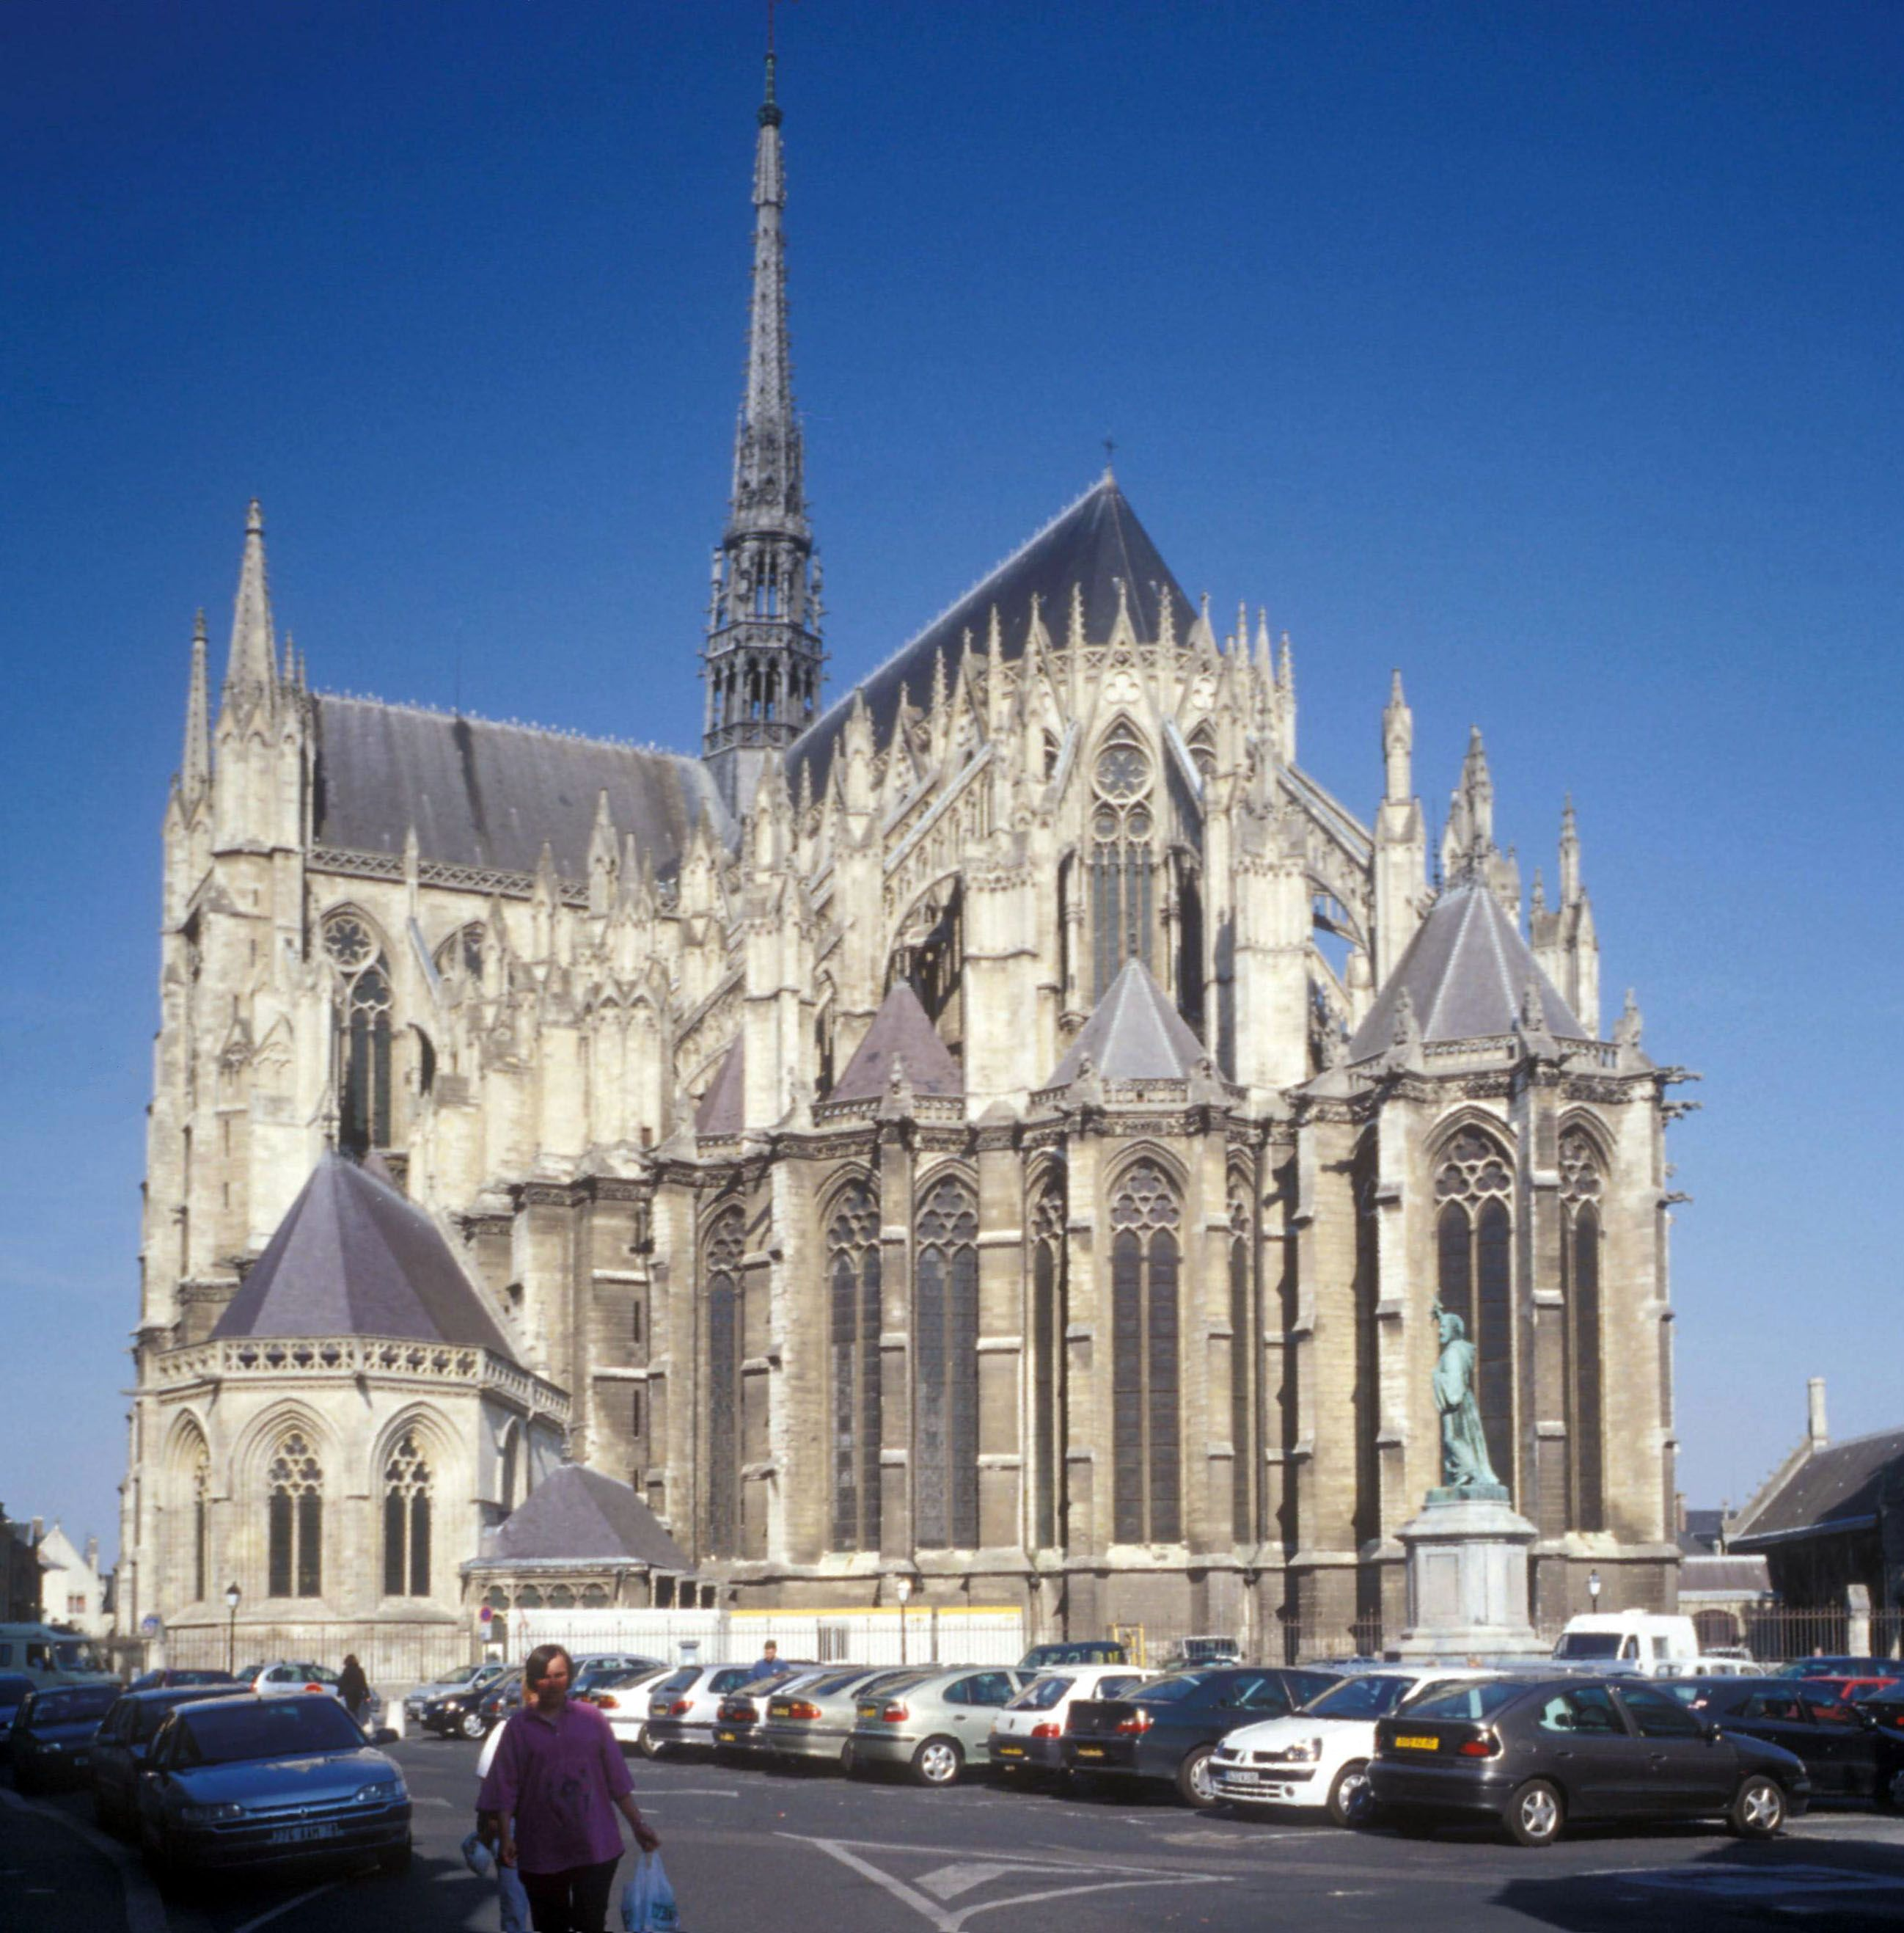 Gothic structure dating from 13th century. It is